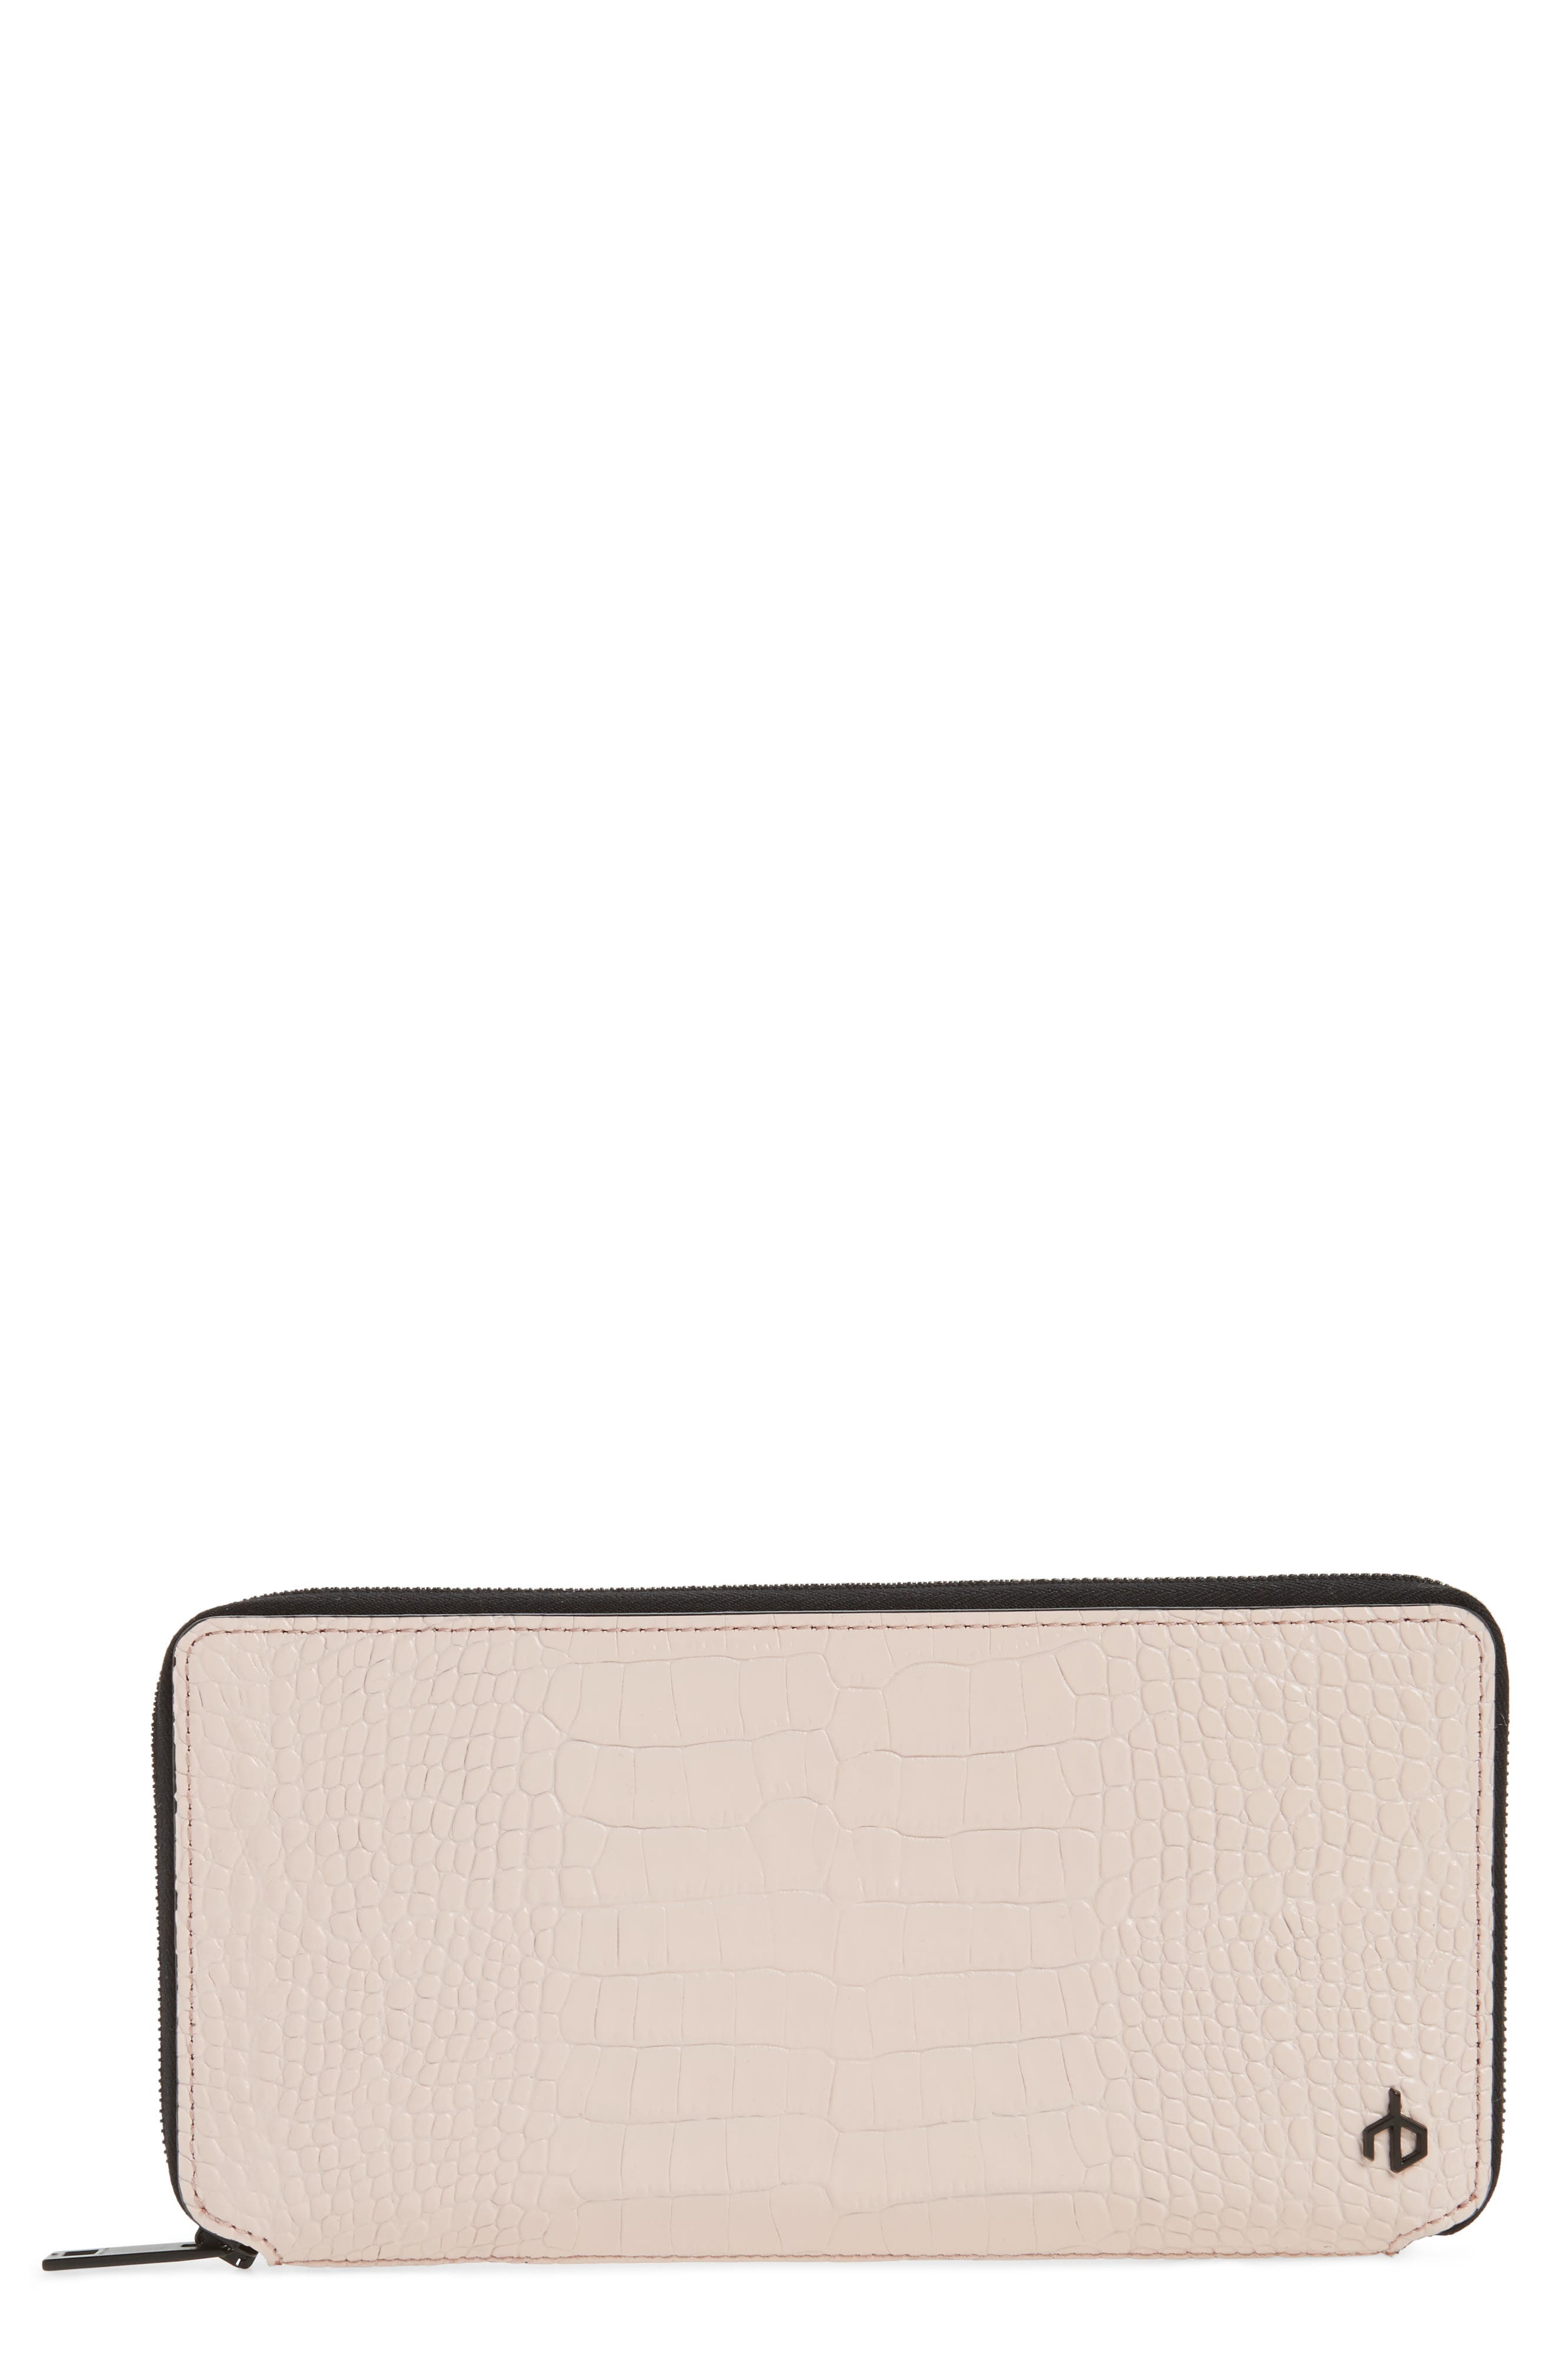 Croc Embossed Zip Around Leather Wallet,                             Main thumbnail 2, color,